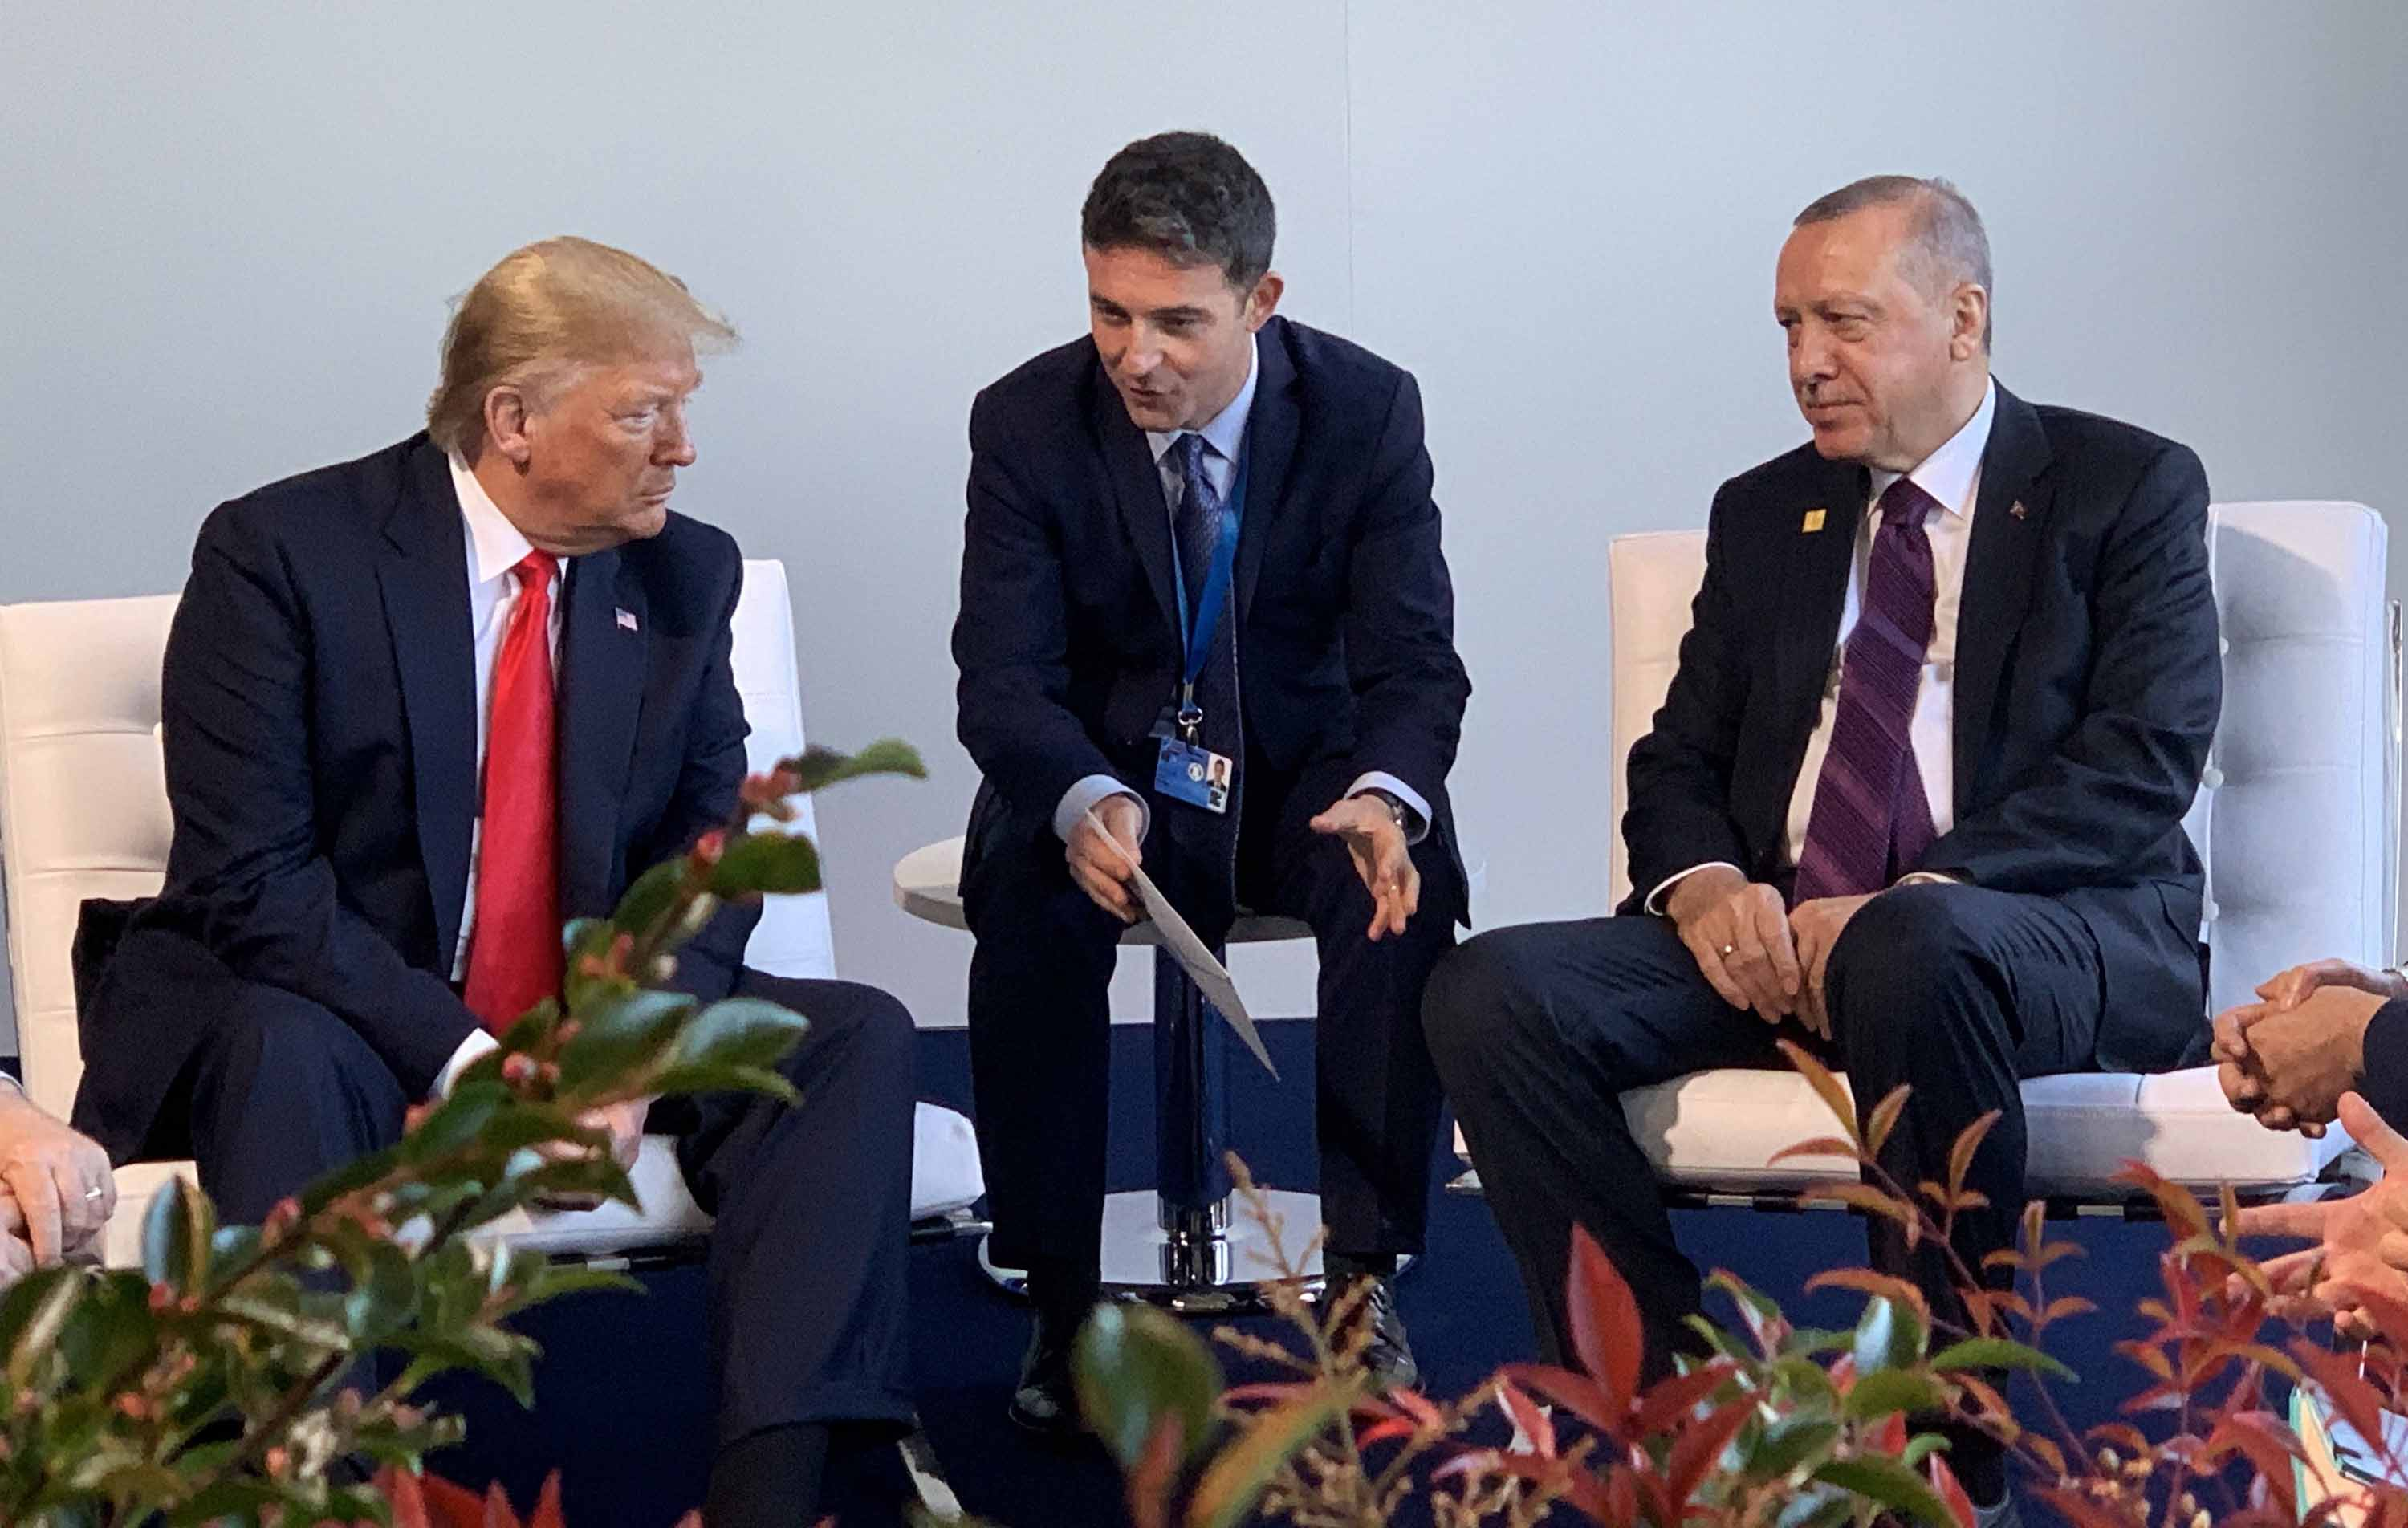 Trump meets with Turkish President Erdogan during the NATO Leaders' Summit on Wednesday. Photo: Handout/Turkish Presidency/Anadolu Agency via Getty Images